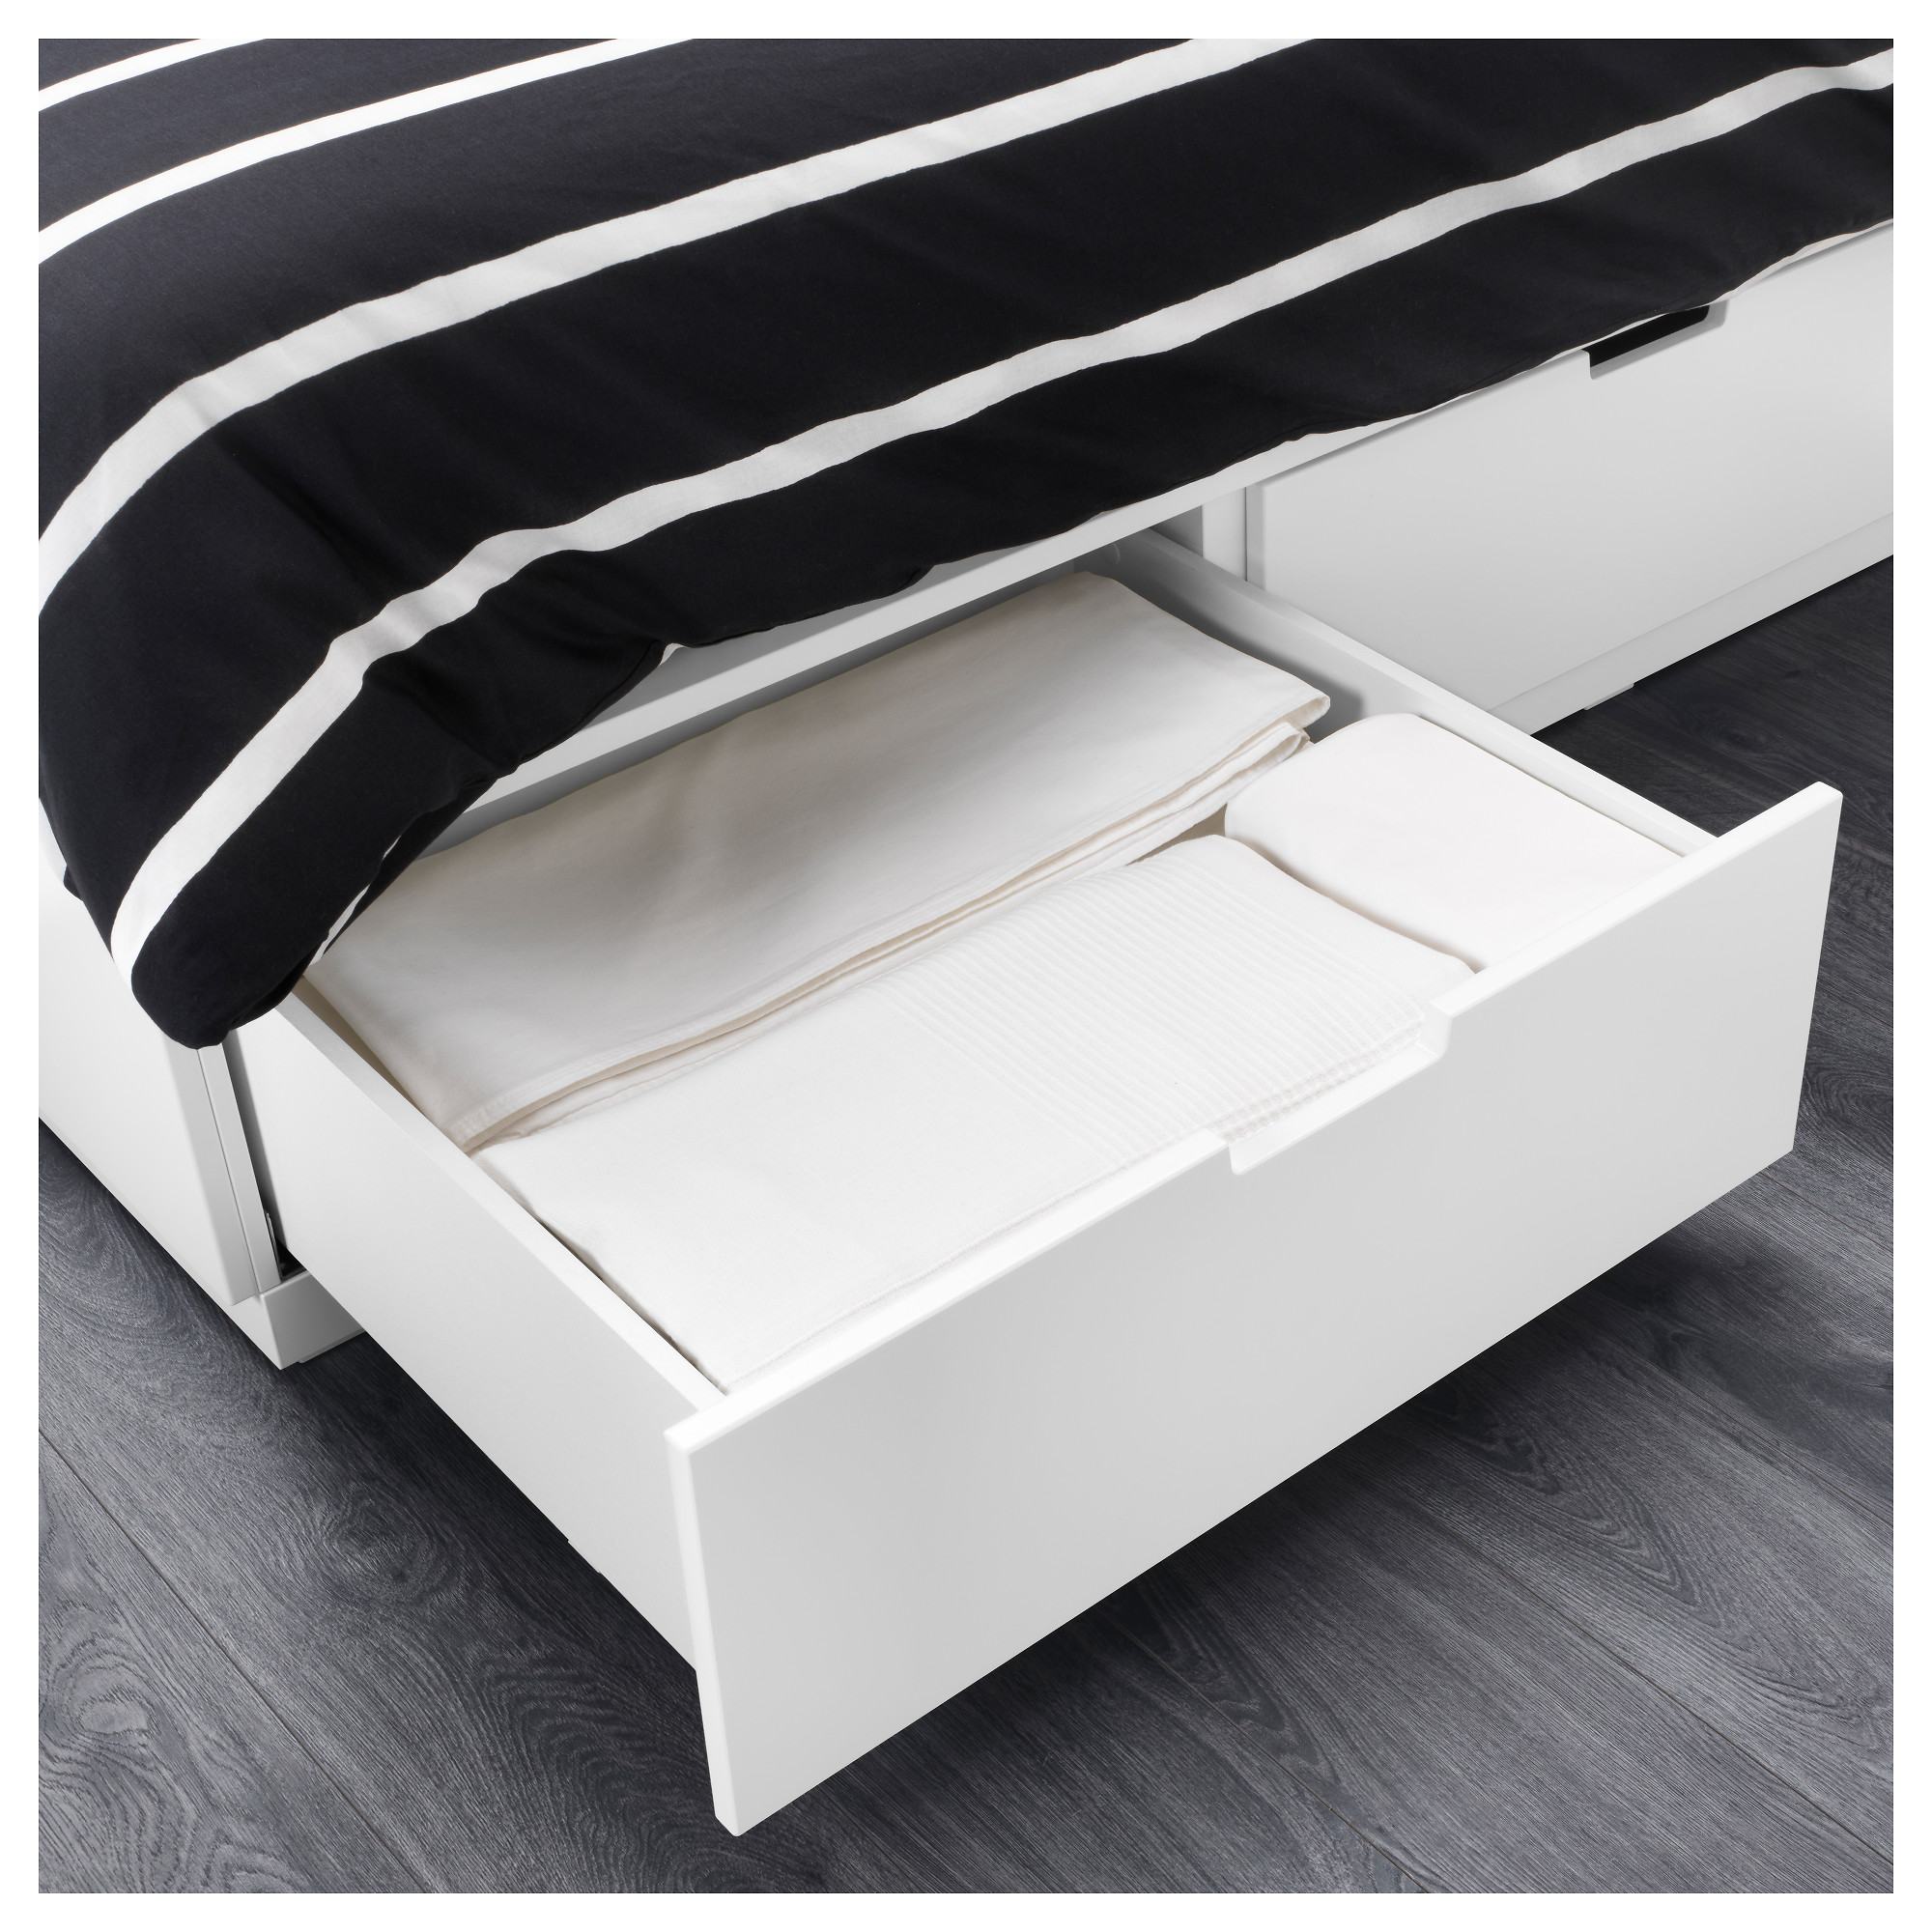 Bed frame with storage - Bed Frame With Storage 10